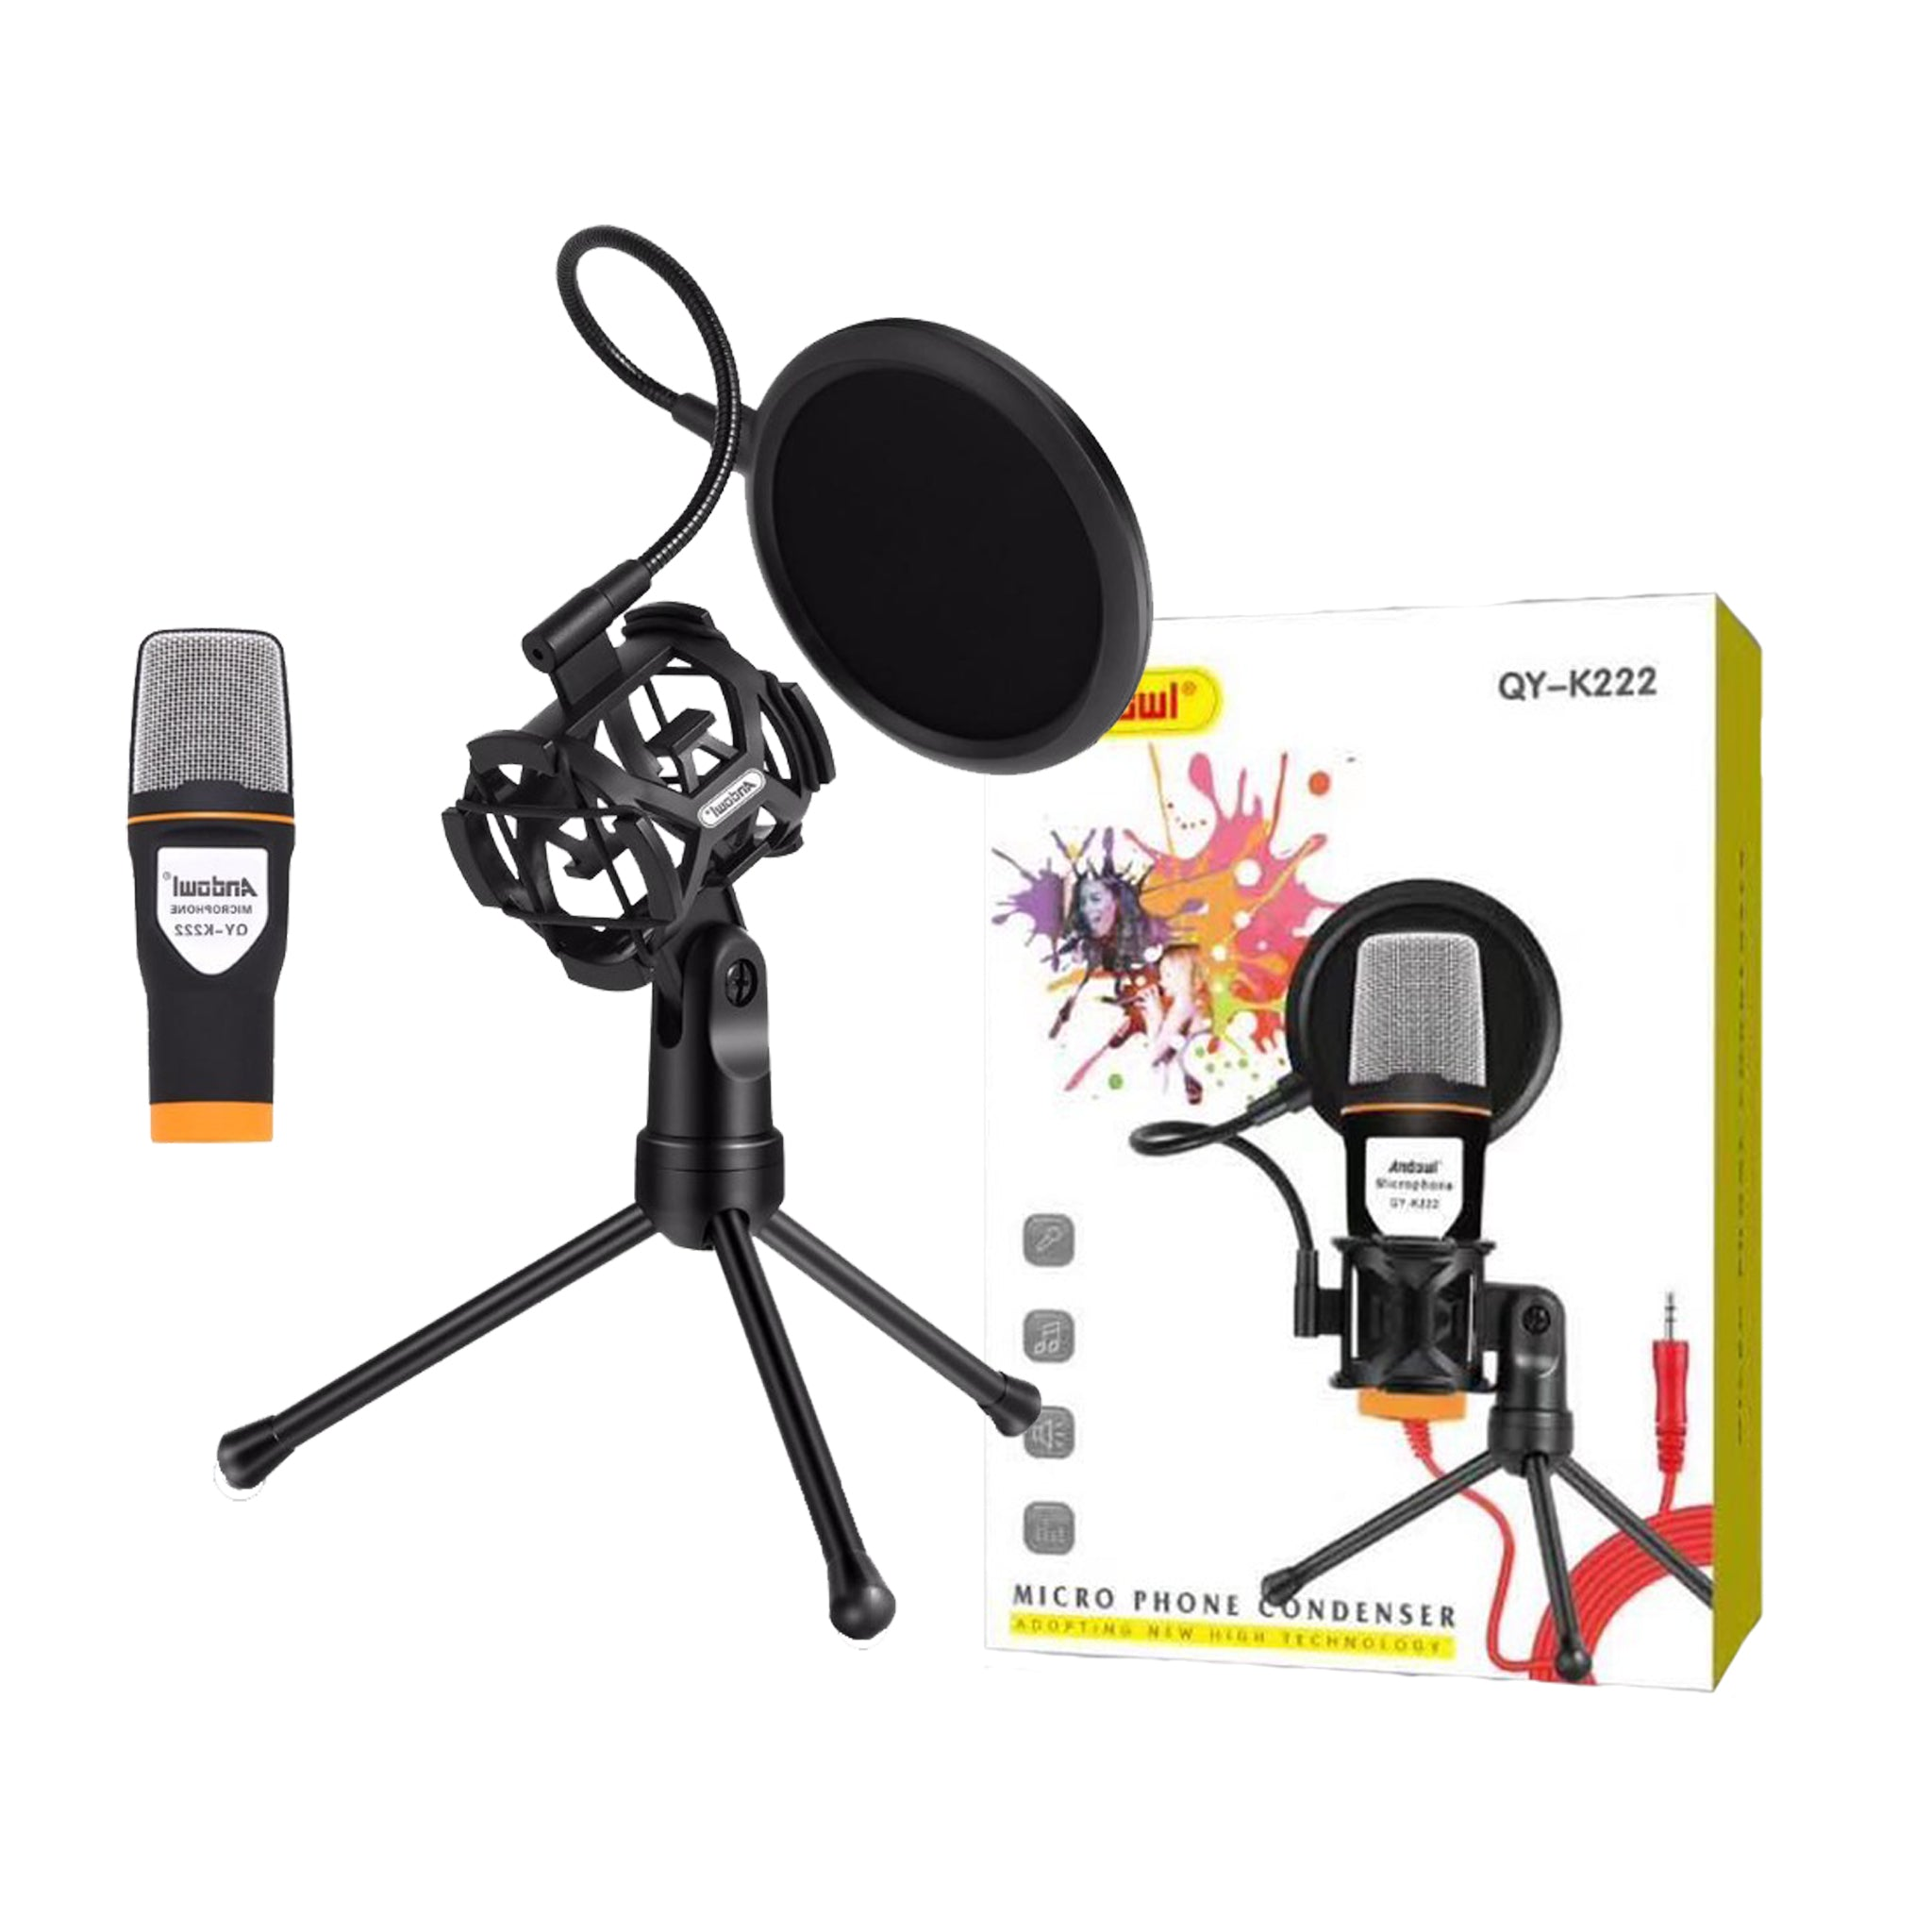 ANDOWL QY-K222 Microphone